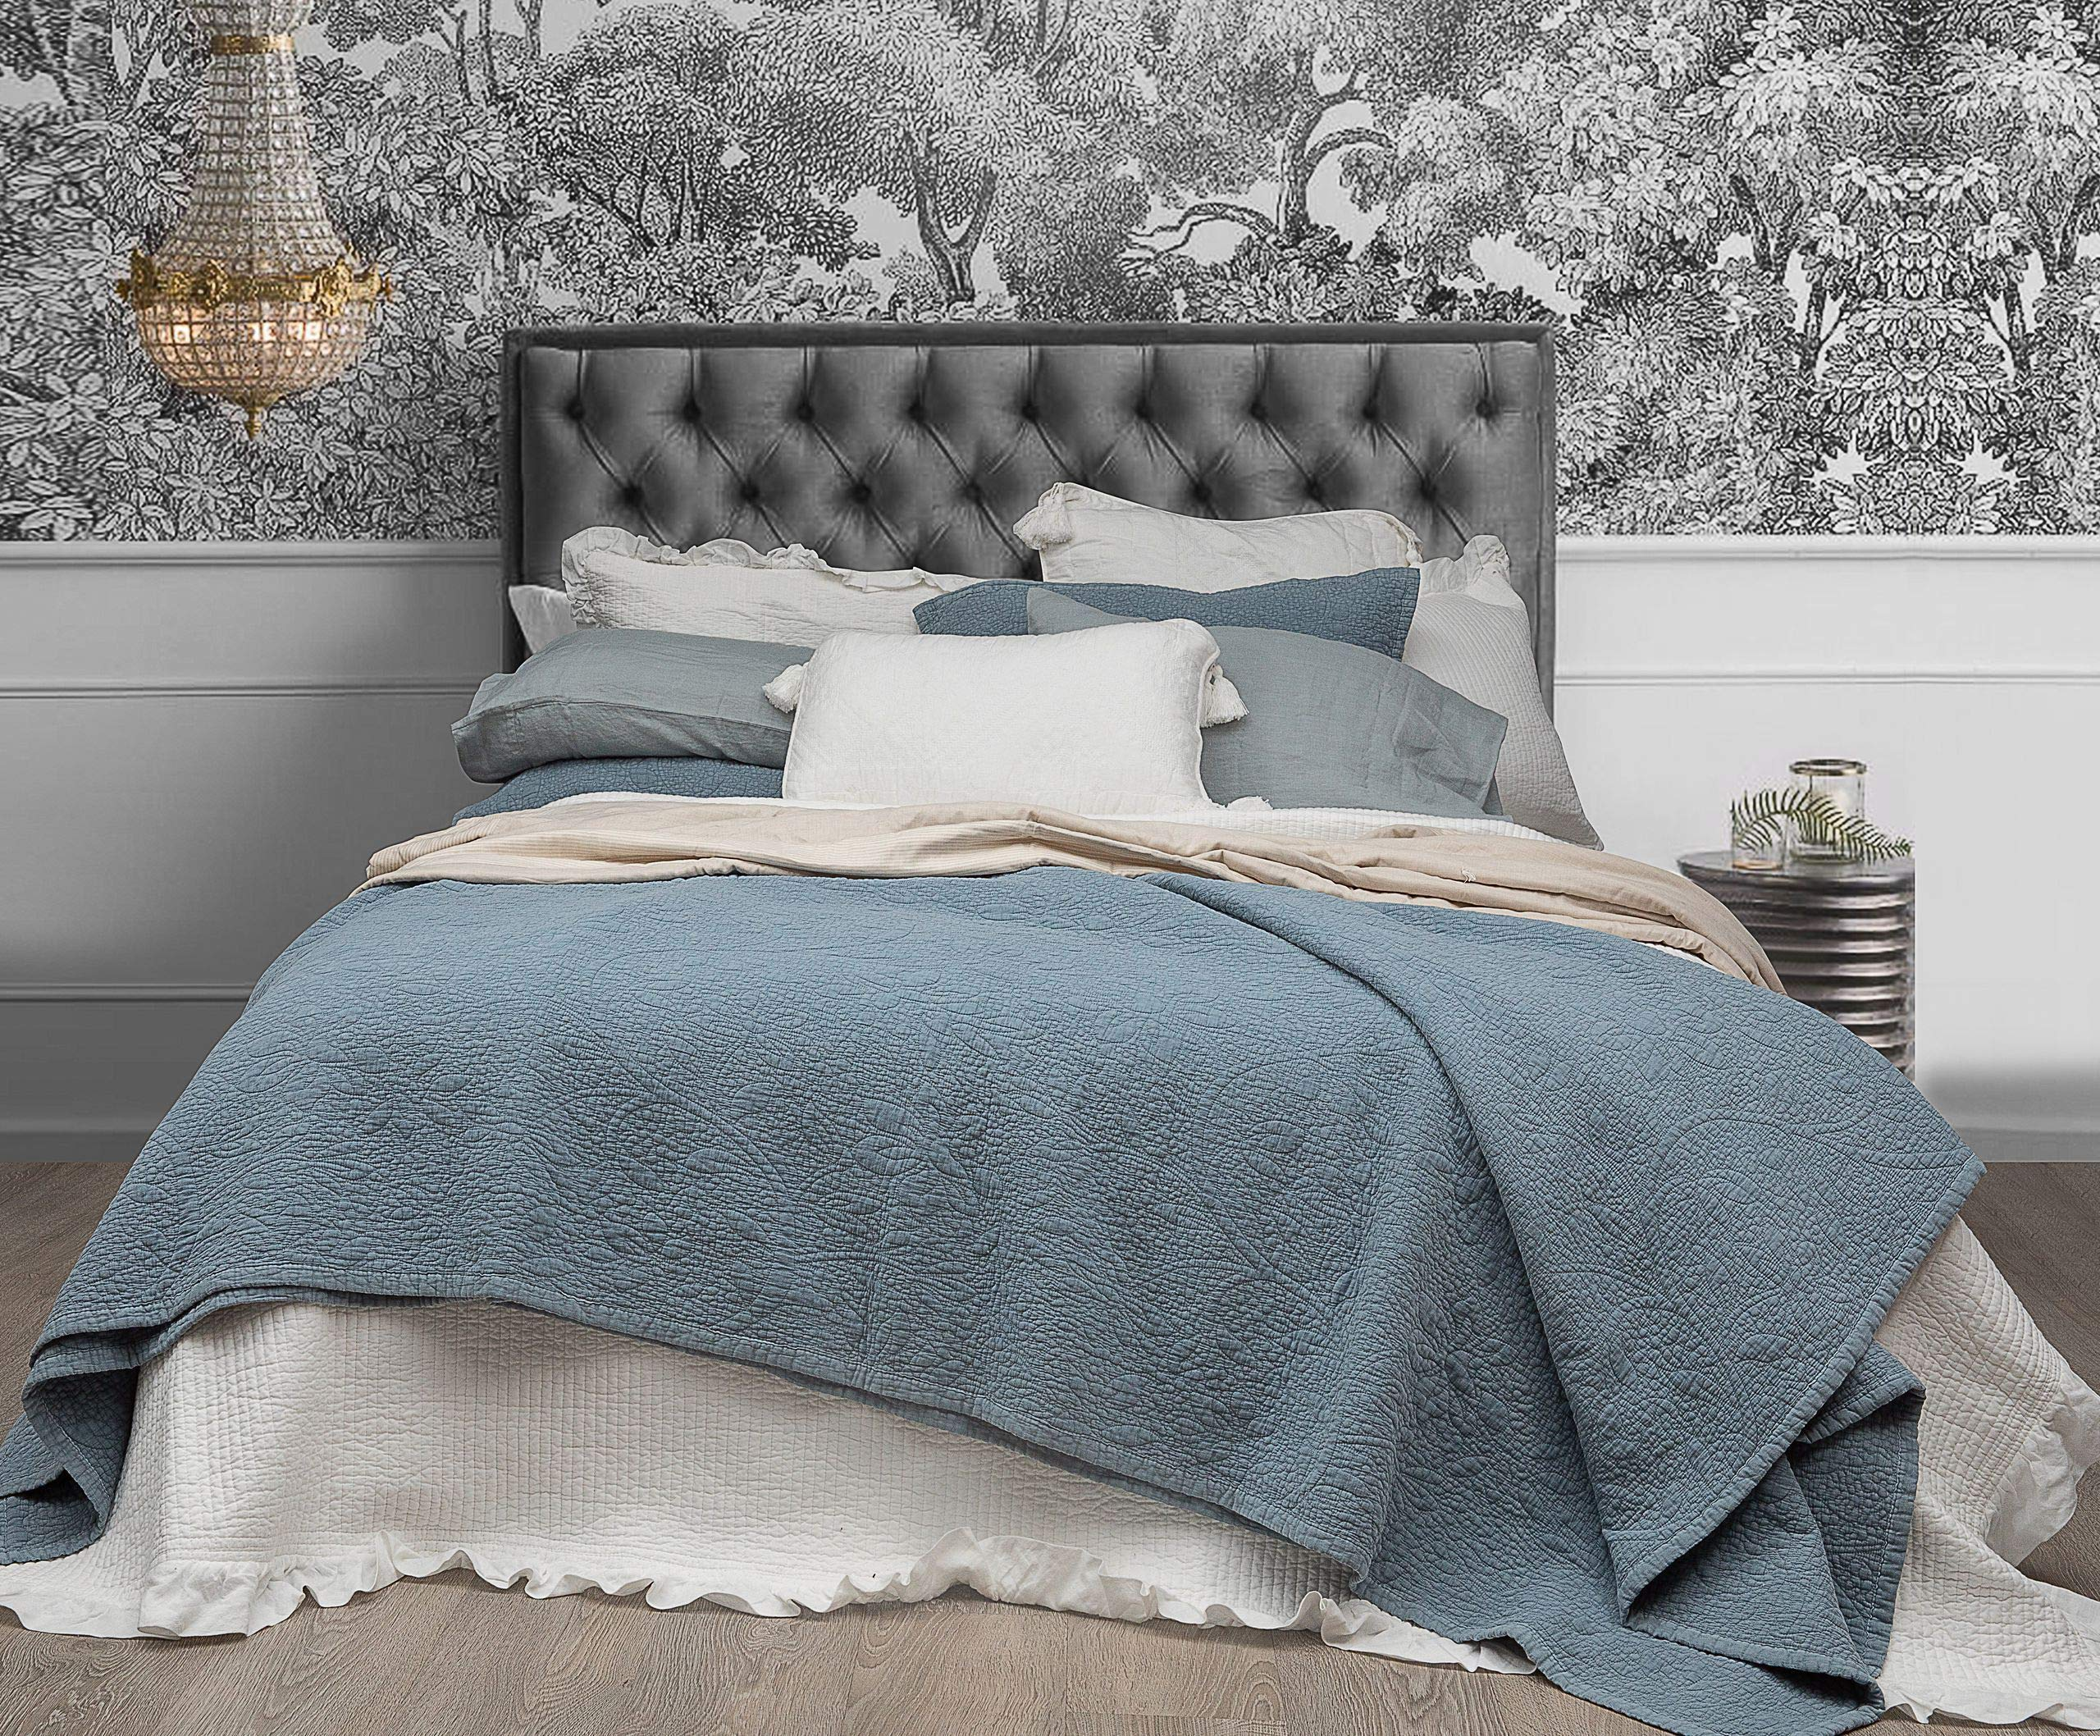 Stonewashed Tropical Palm Rust 100/% Cotton Coverlet Bedspread Bedcover Set New